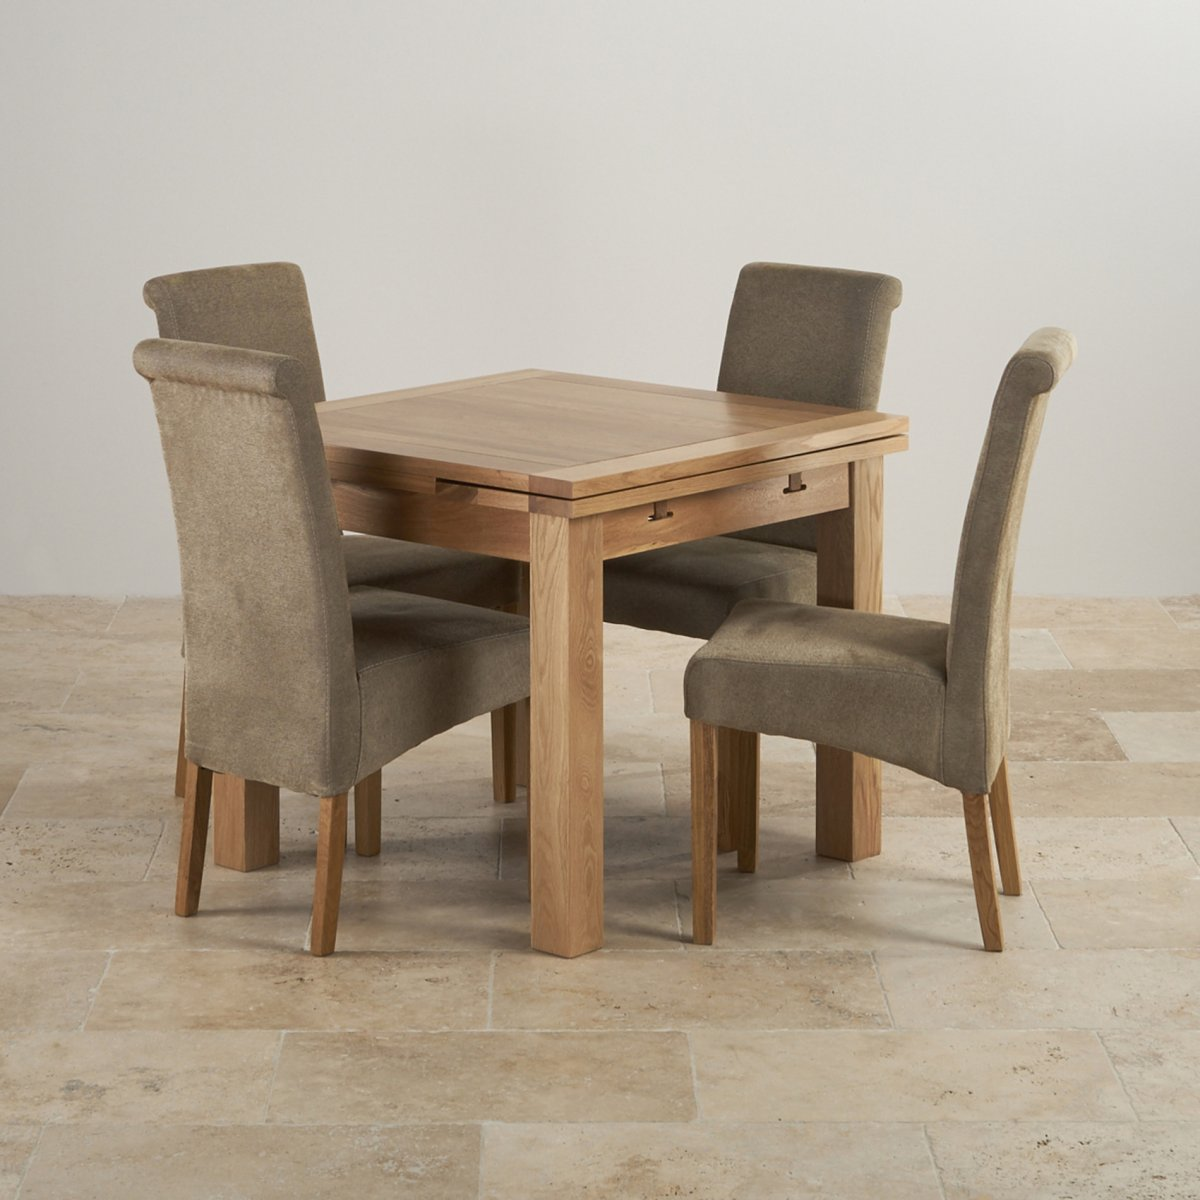 dorset oak 3ft dining table with 4 sage fabric chairs. Black Bedroom Furniture Sets. Home Design Ideas